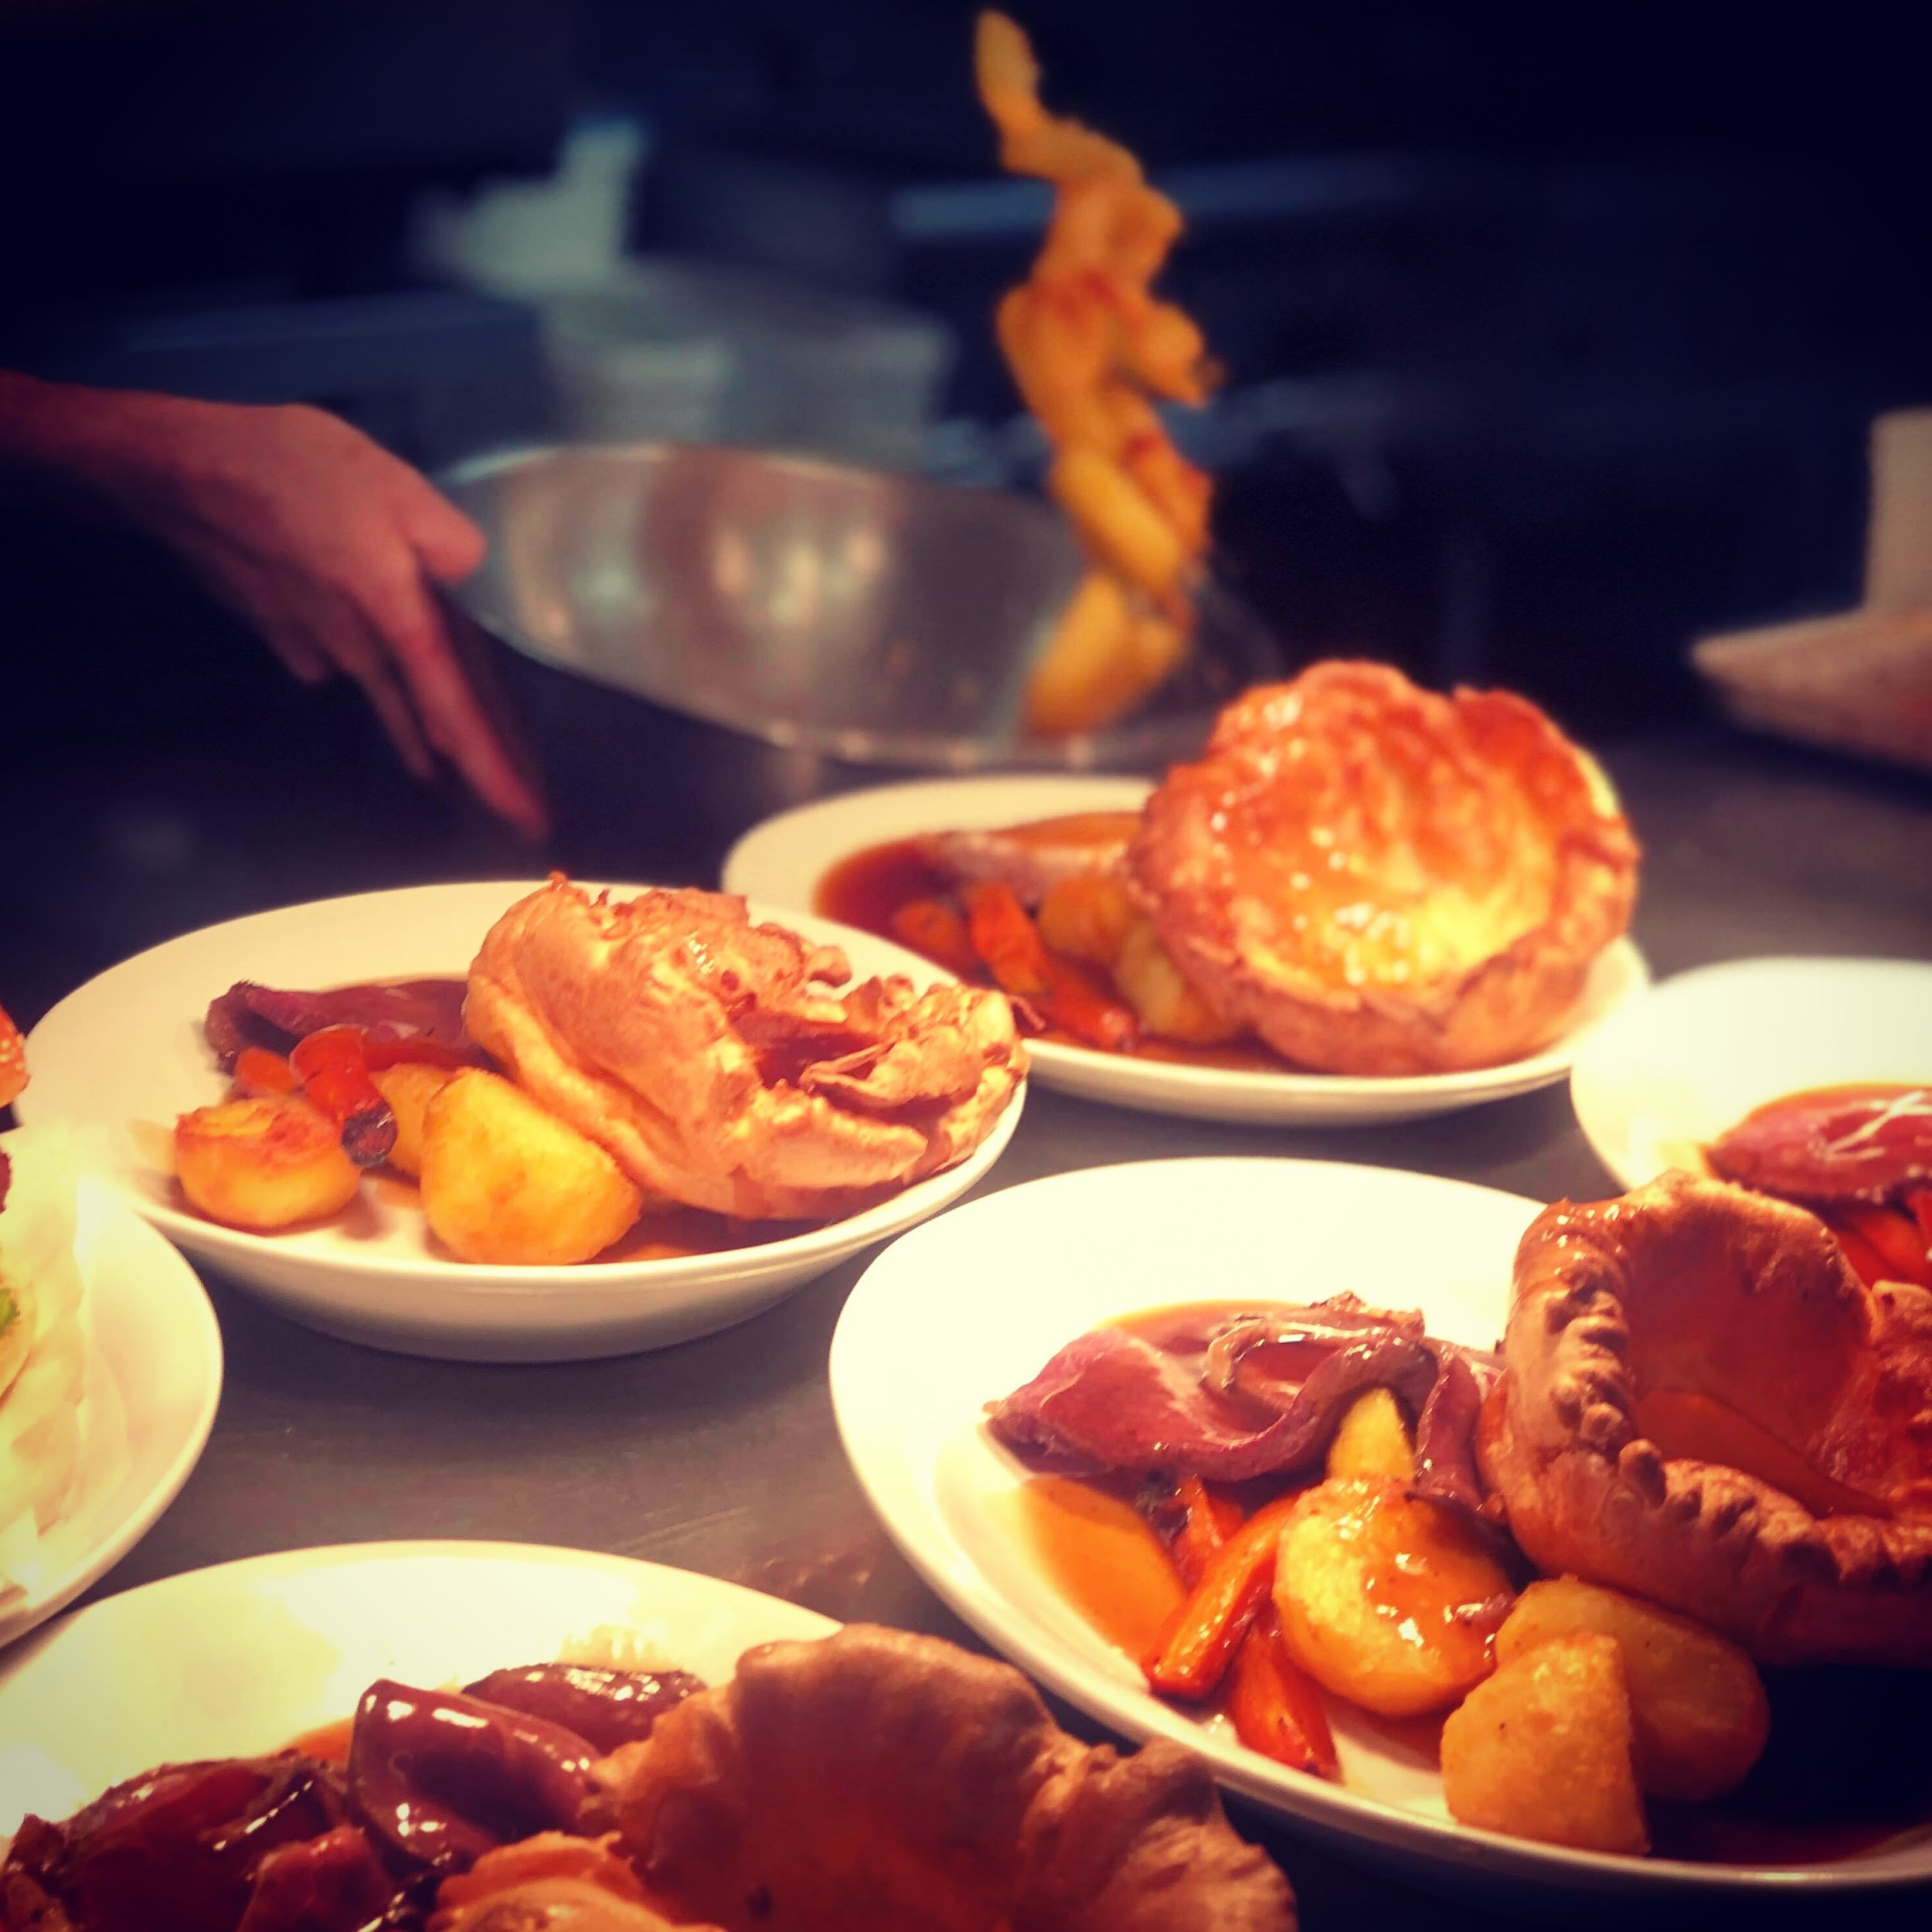 Sunday Roast - Served from midday onwards.Roast sirloin £15Roast pork loin £13Roast chicken supreme £12Nut roast £12all our roasts are served with roast potatoes, Yorkshire pudding, seasonal veg and gravyA selection of dishes from our main menu is available in addition to the selection of roasts.